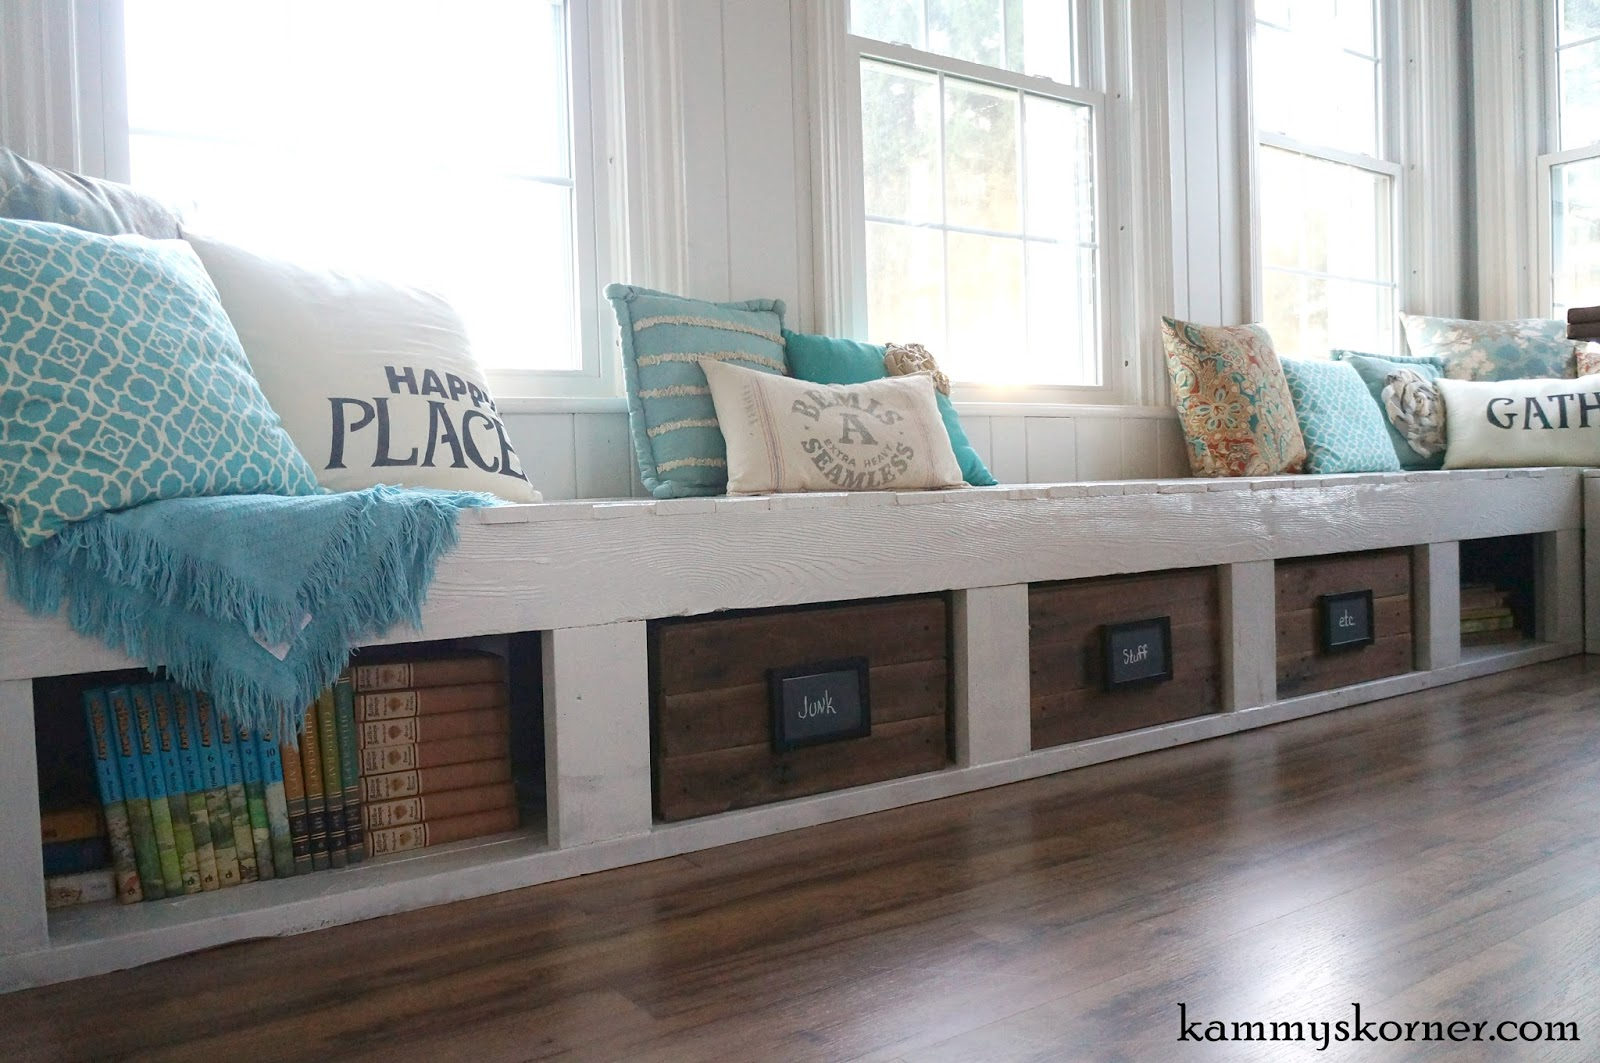 Kammy's Korner: One Of A Kind Window Seats From A Planked Wood Walkway